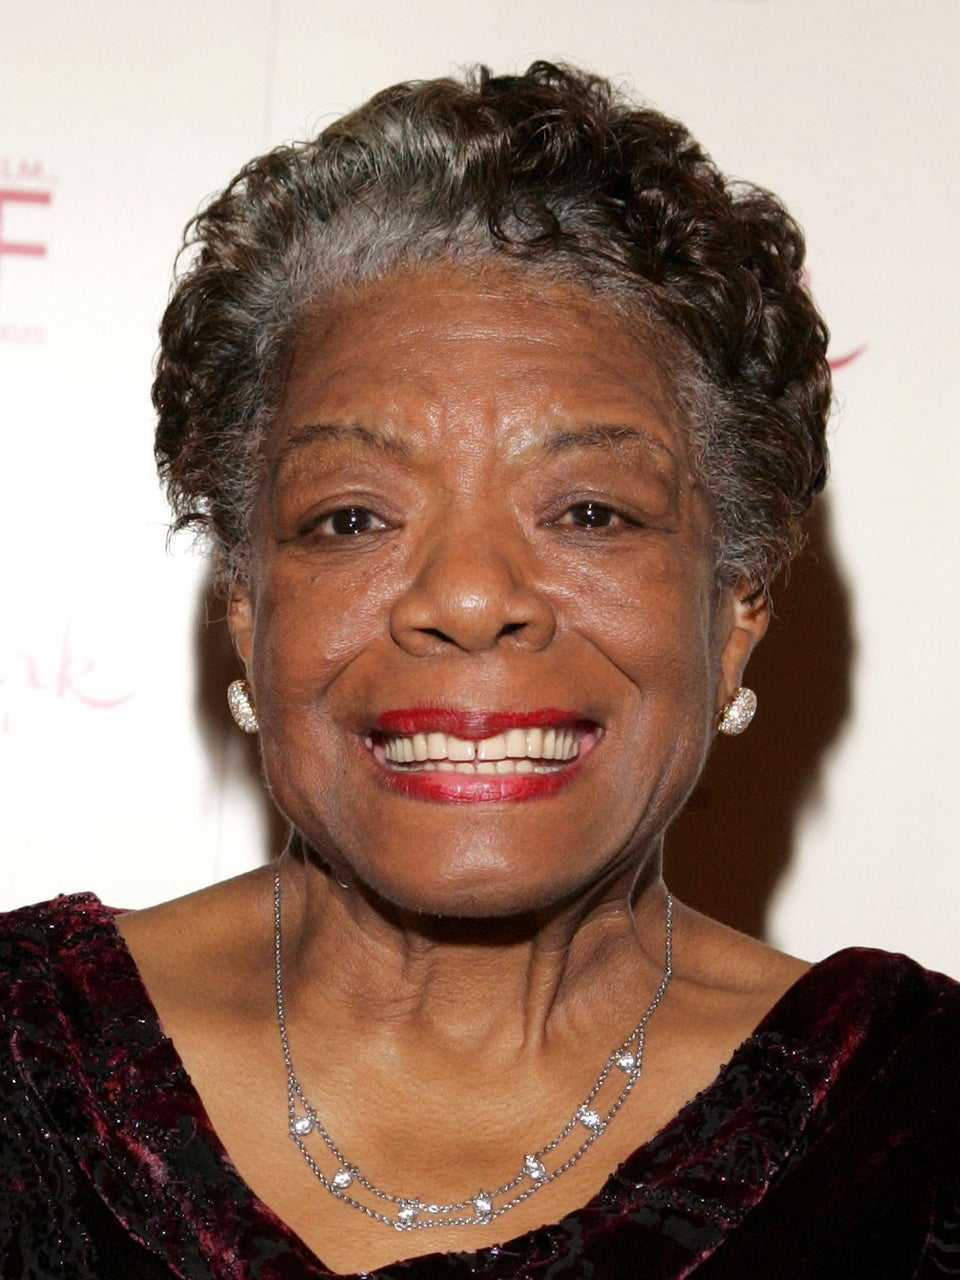 Maya Angelou Has People Debating How To Respectfully Refer To Our Elders